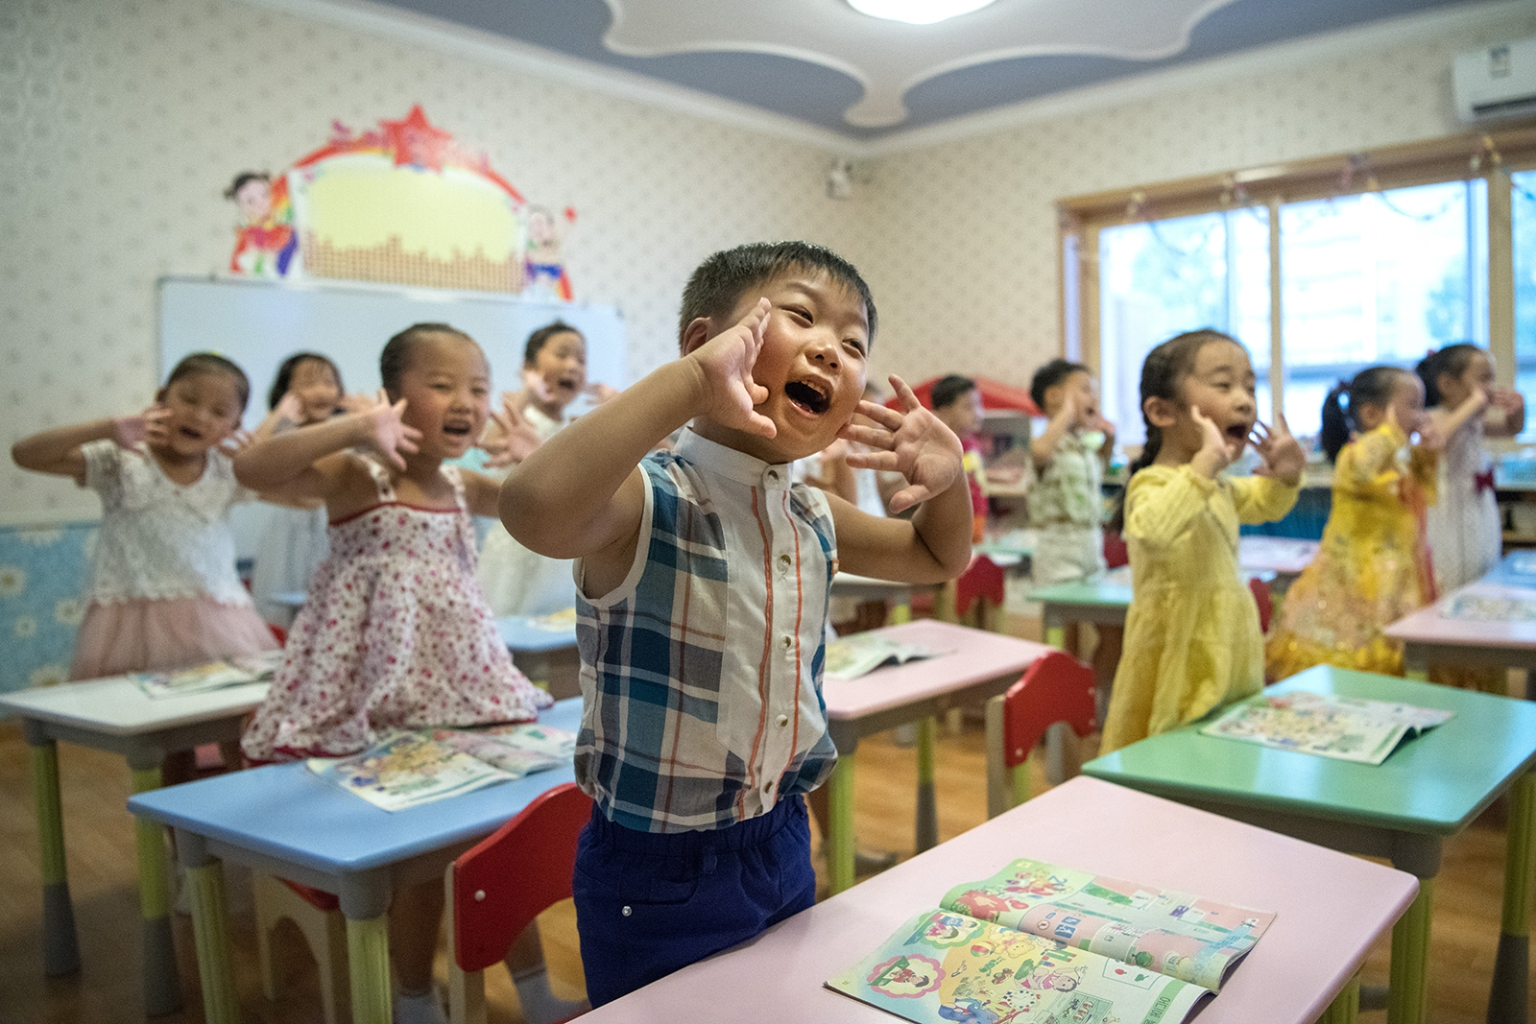 North Korean children gesture and shout at the instruction of a teacher at Gyeongsang Kindergarten in Pyongyang on Aug. 23. CARL COURT/GETTY IMAGES